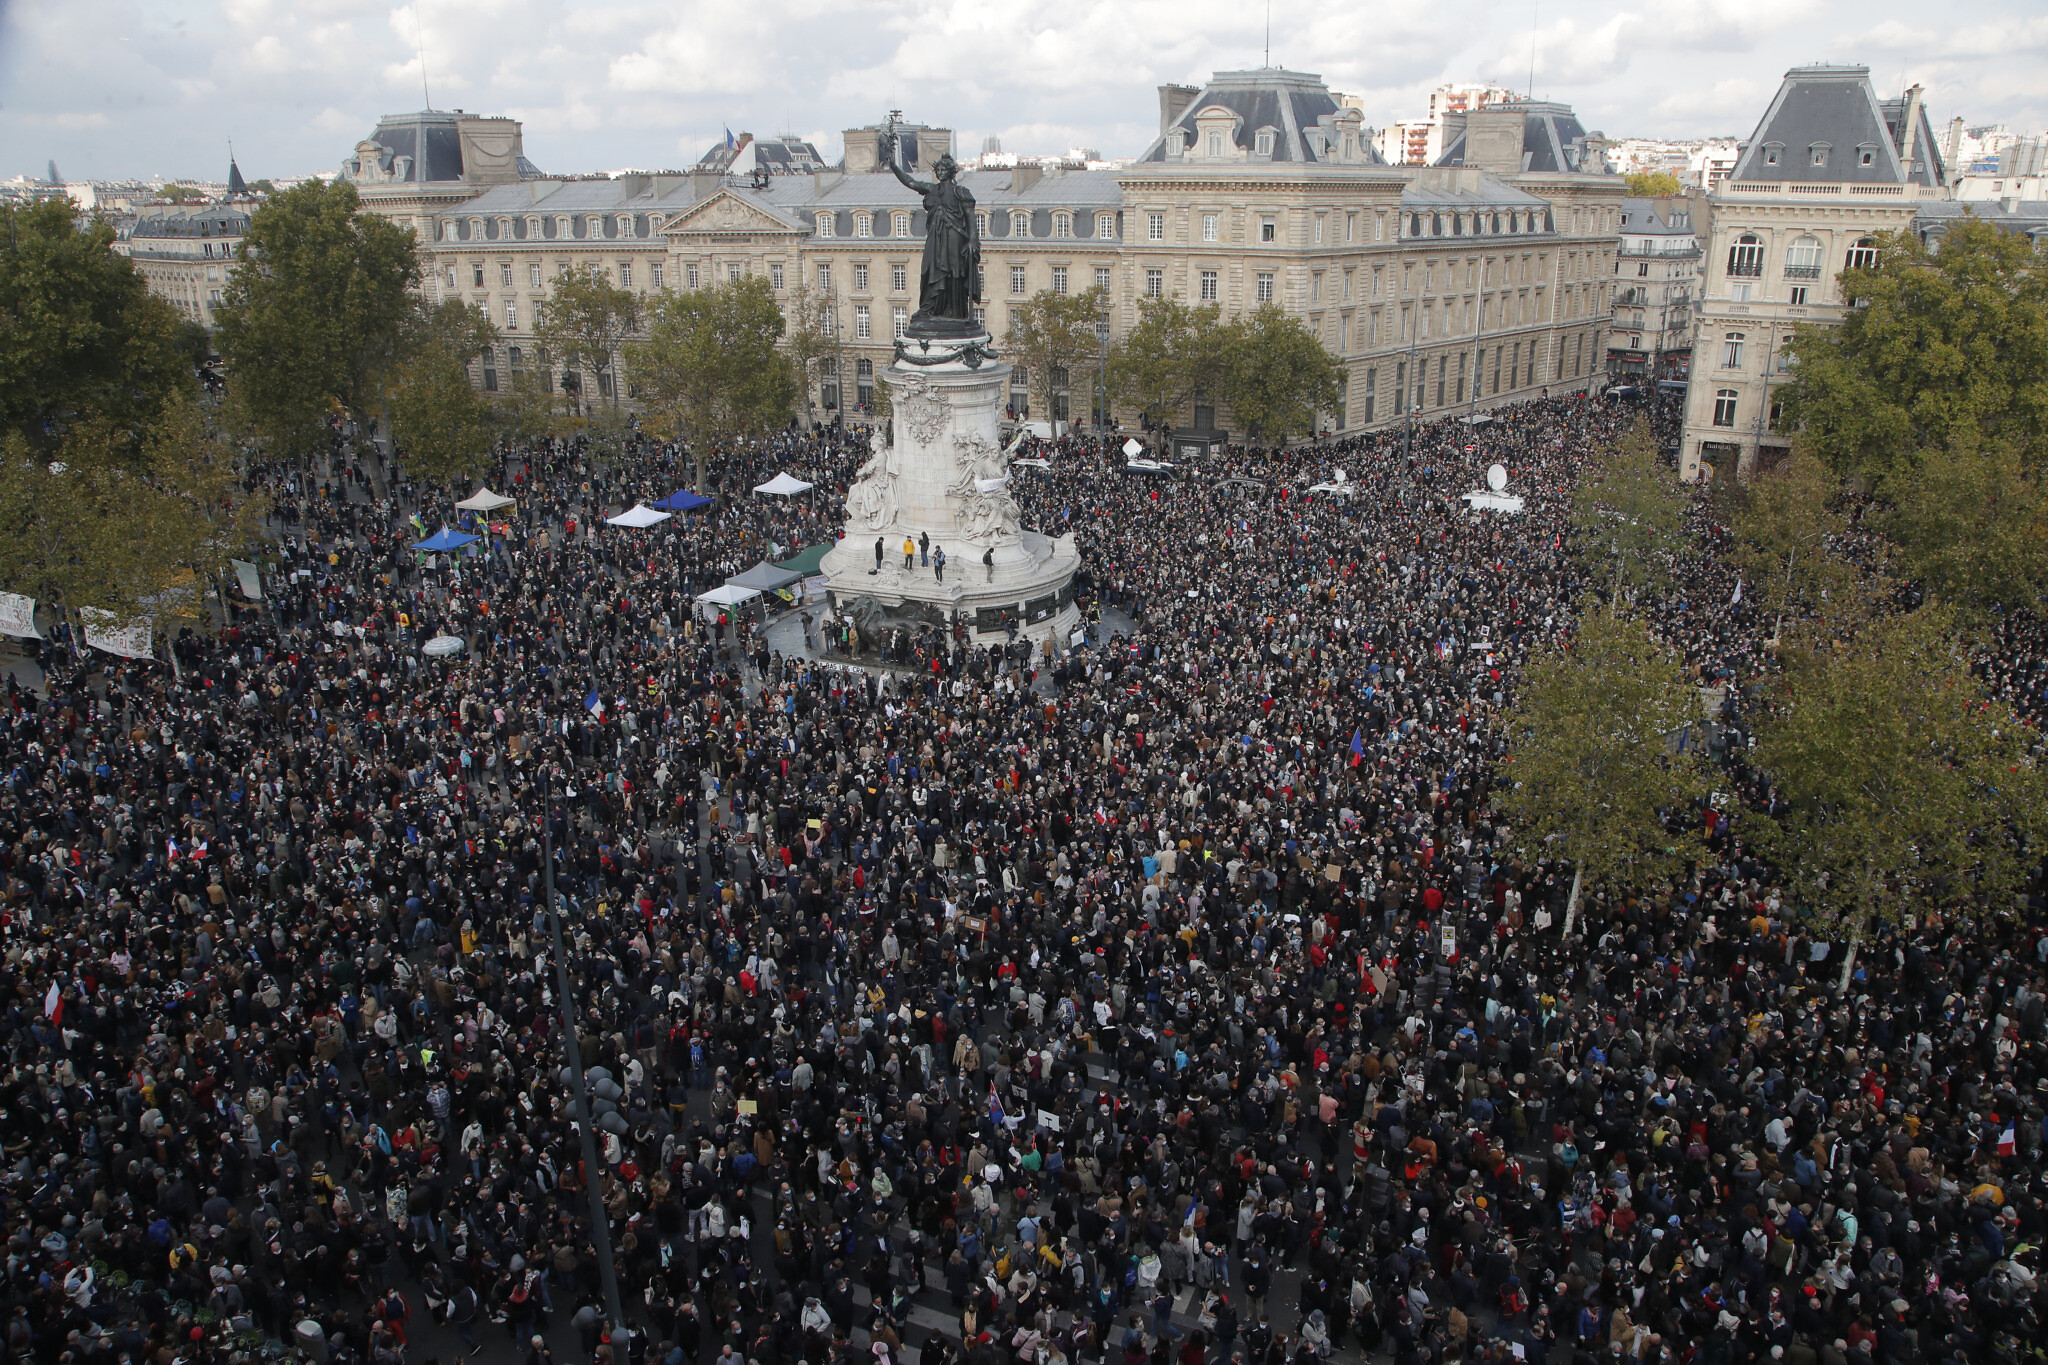 Hundreds of people gather at Republique square during a demonstrati